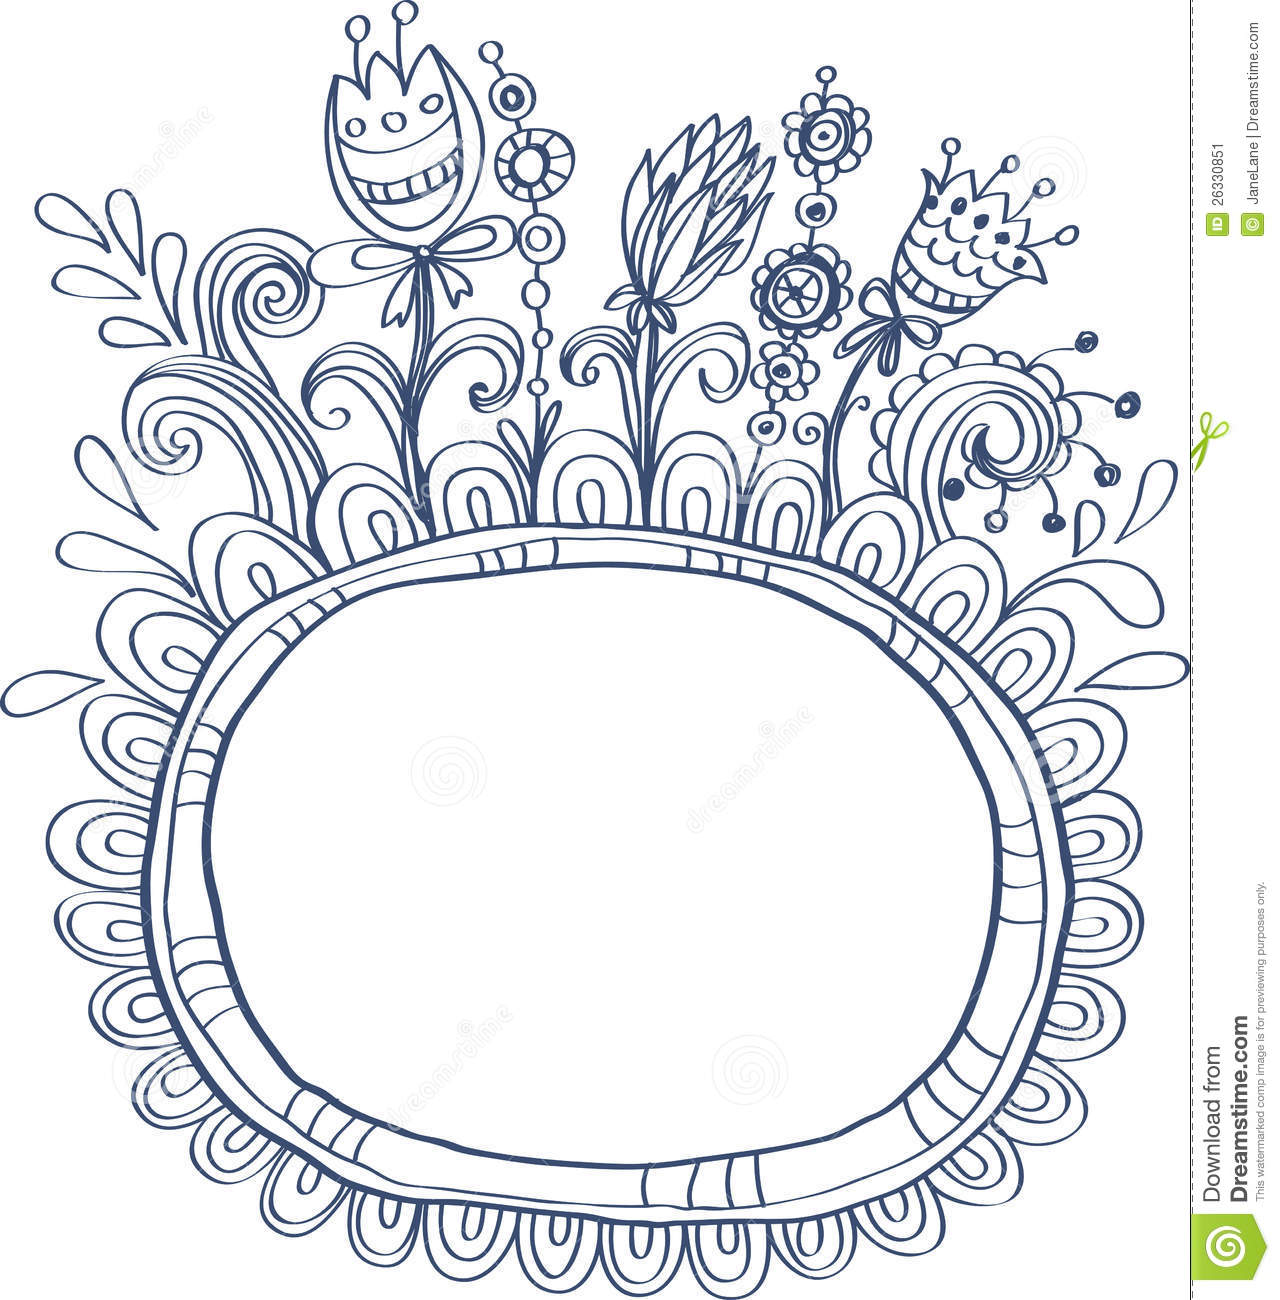 Decorative frames set download free vector art stock graphics - Doodle Frame With Birds And Flowers Stock Image Image